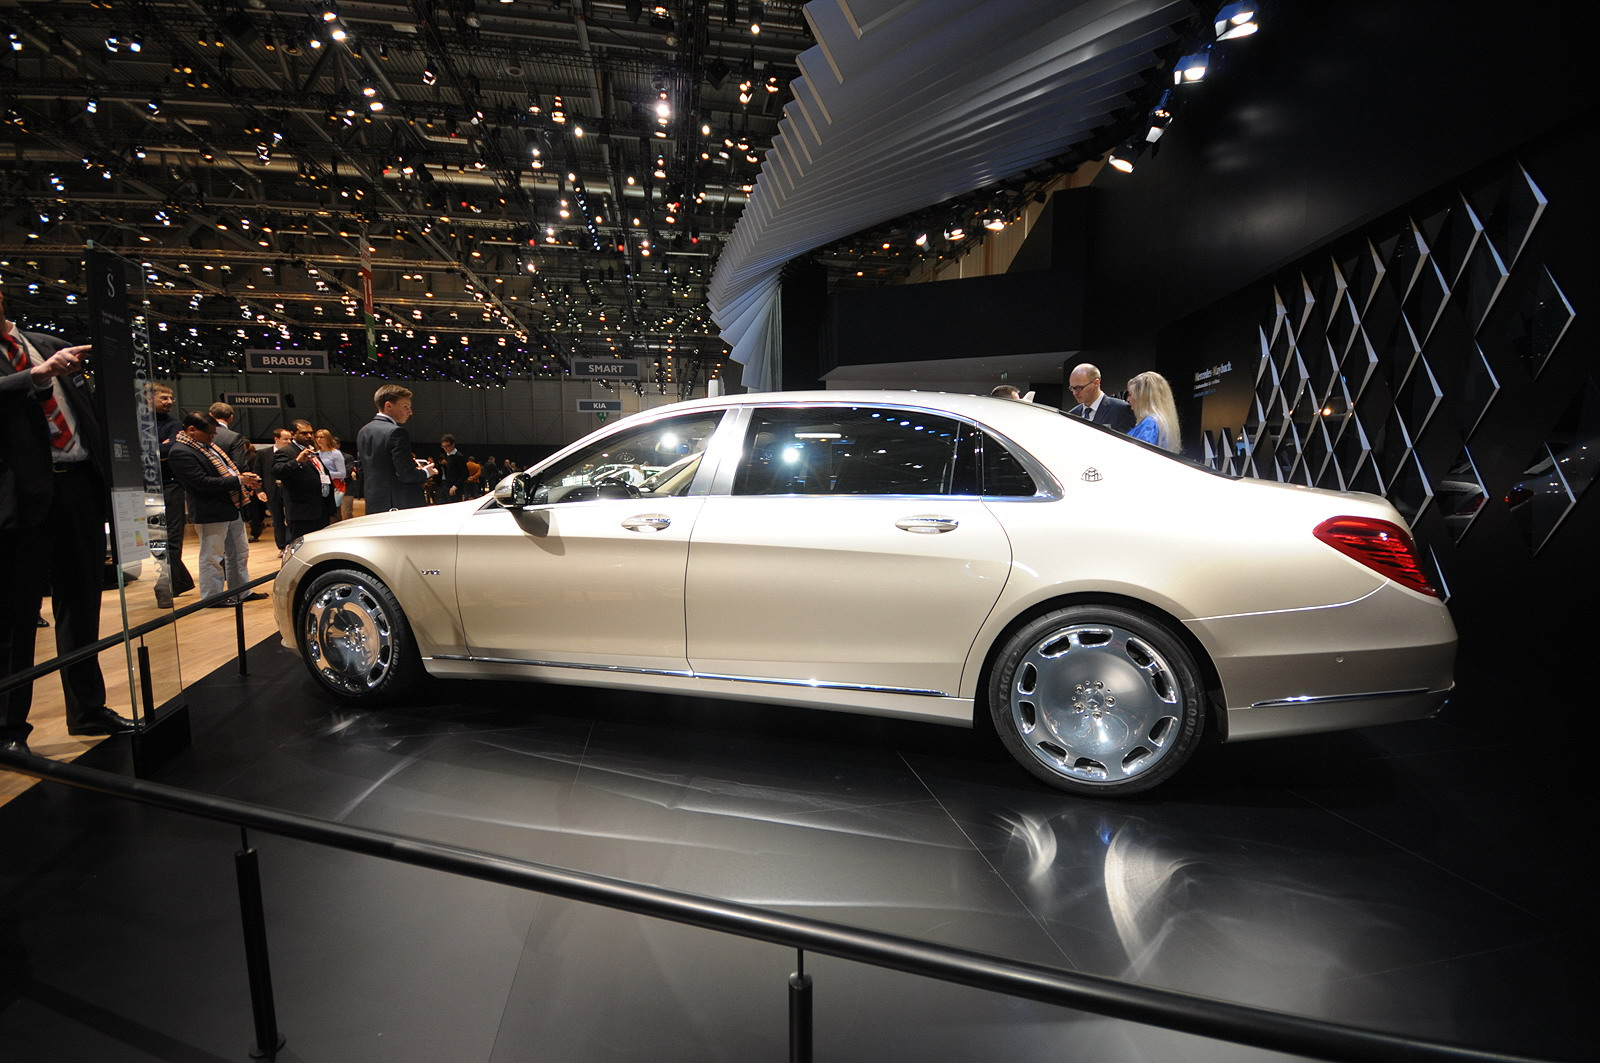 https://pictures.topspeed.com/IMG/jpg/201503/2016-mercedes-maybach-pul-22.jpg